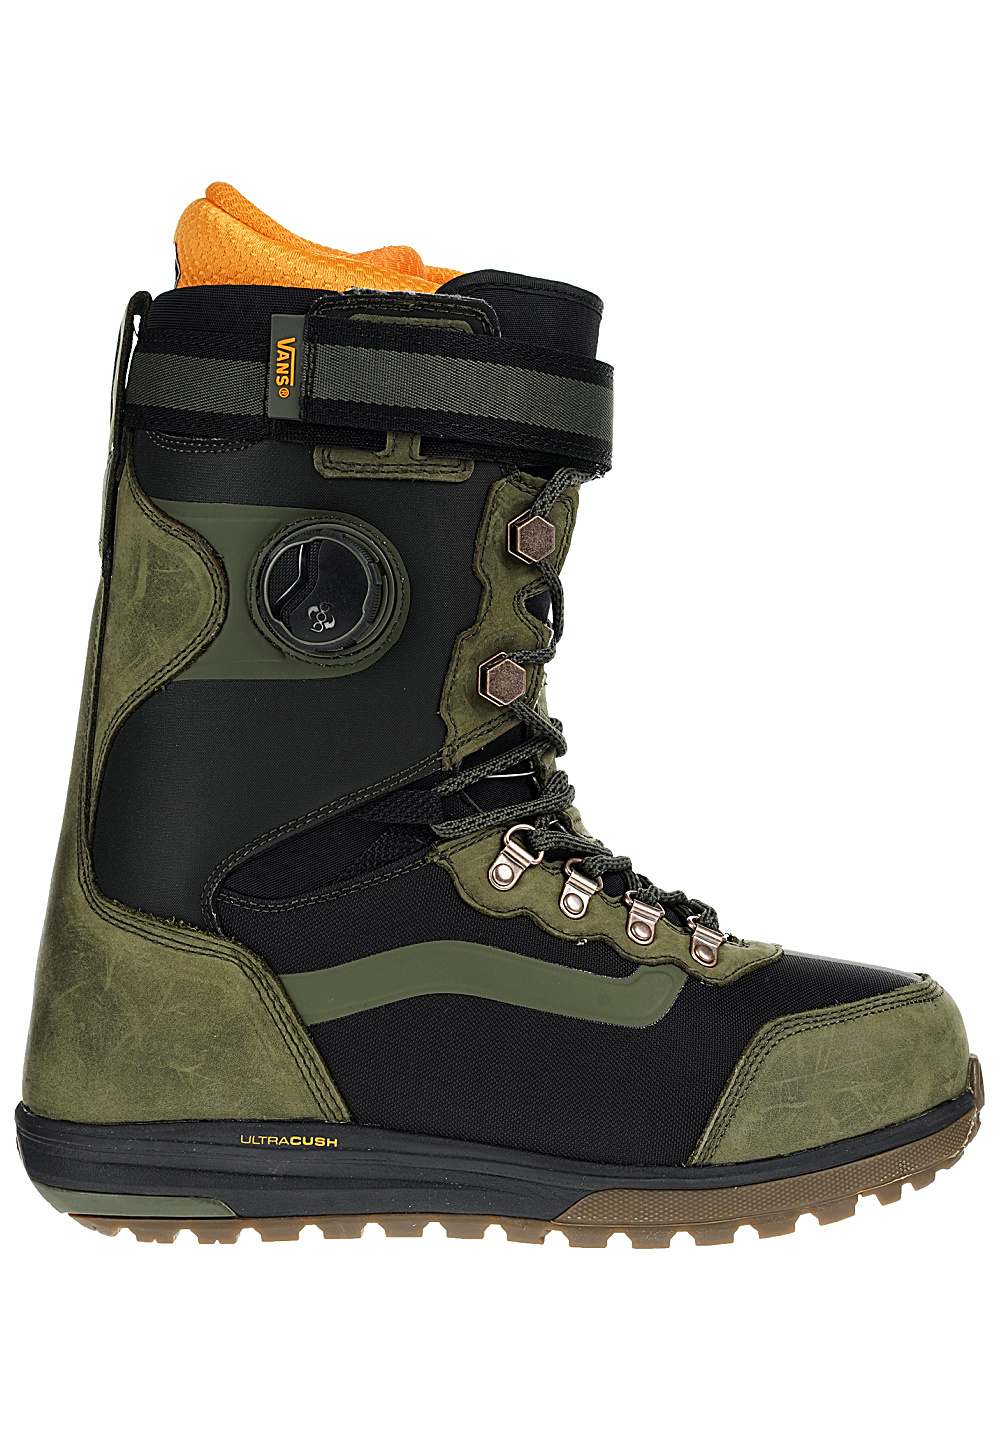 3b8a825bf8 Vans Infuse - Snowboard Boots for Men - Green